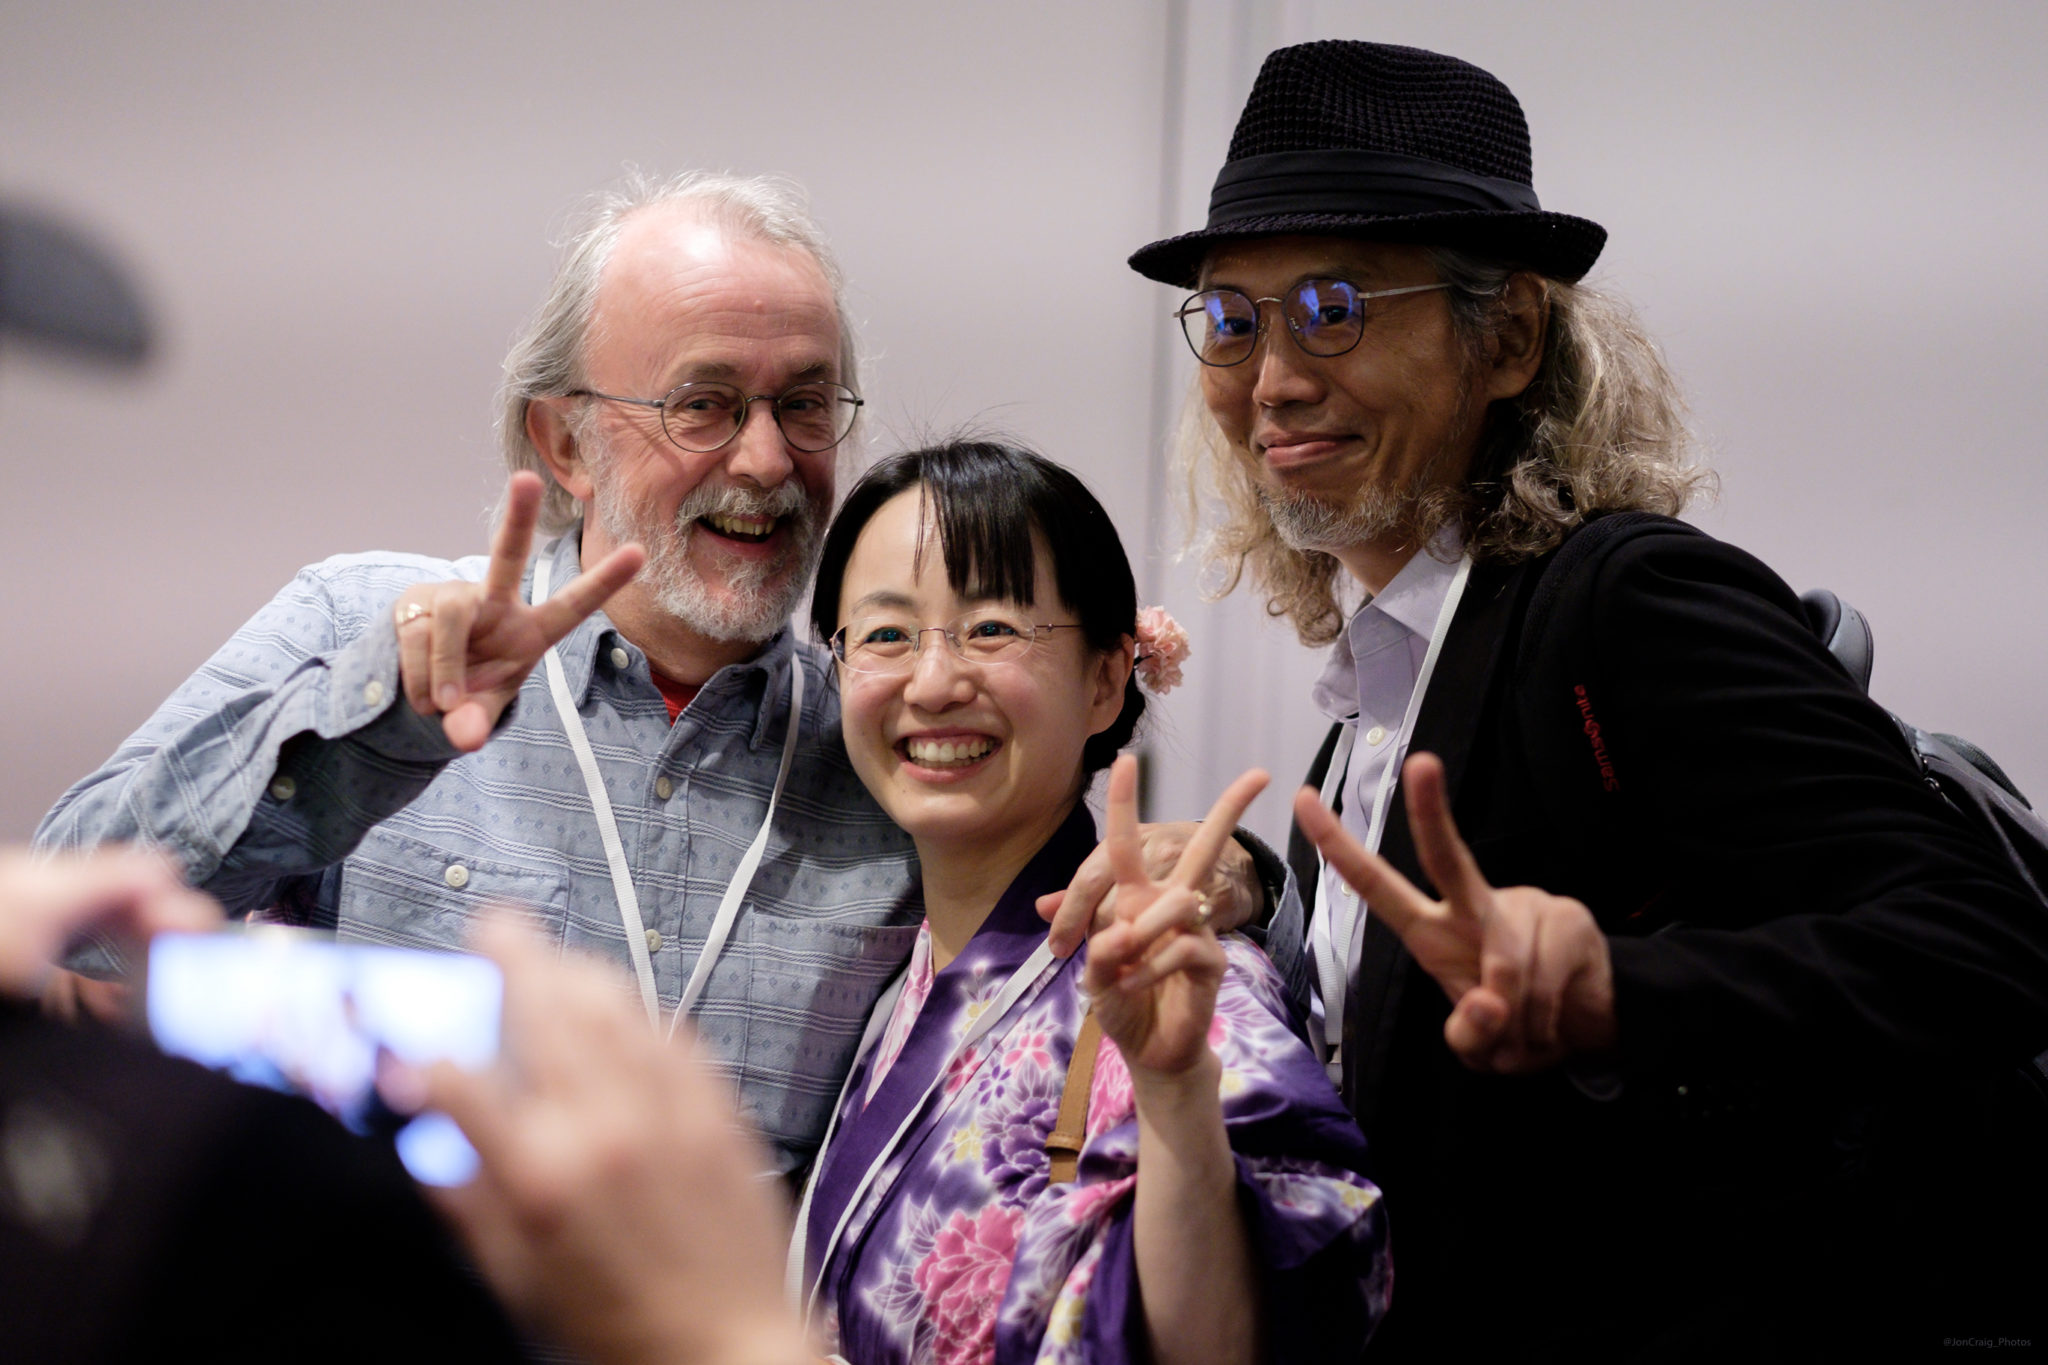 Peter Lord, Eiko Meredith, Yuichi Ito at Encounters 2017